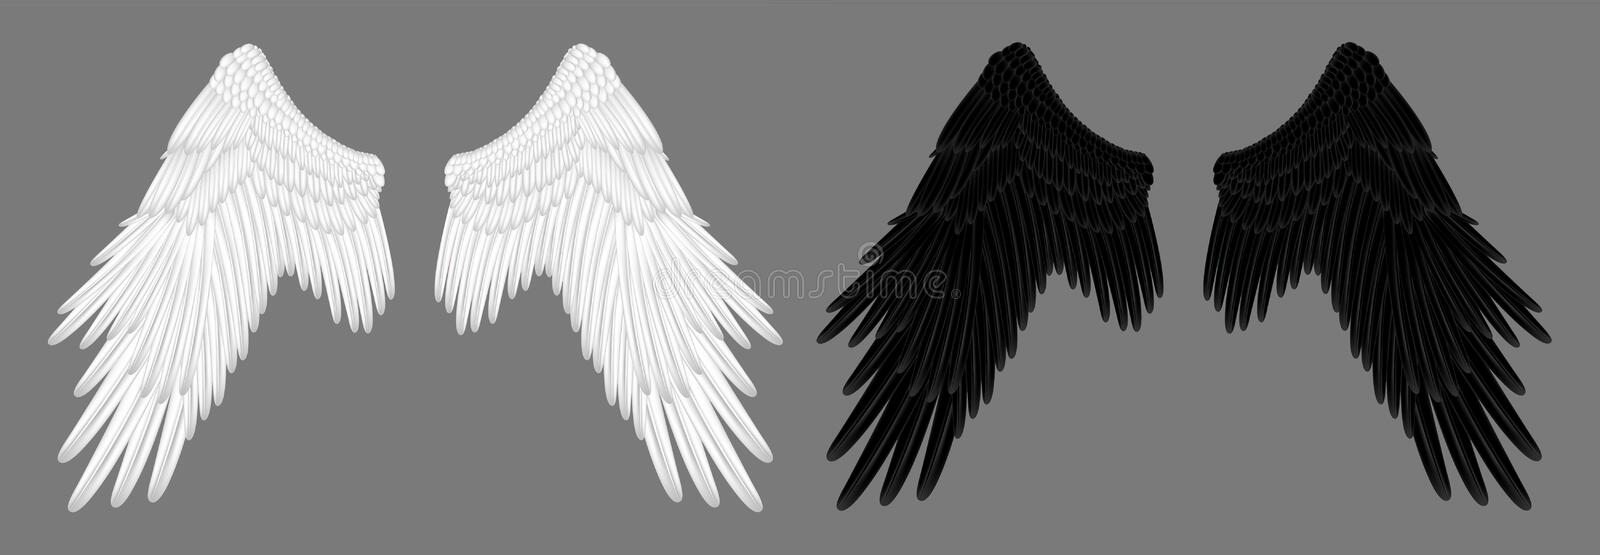 Angel Wings royaltyfri illustrationer